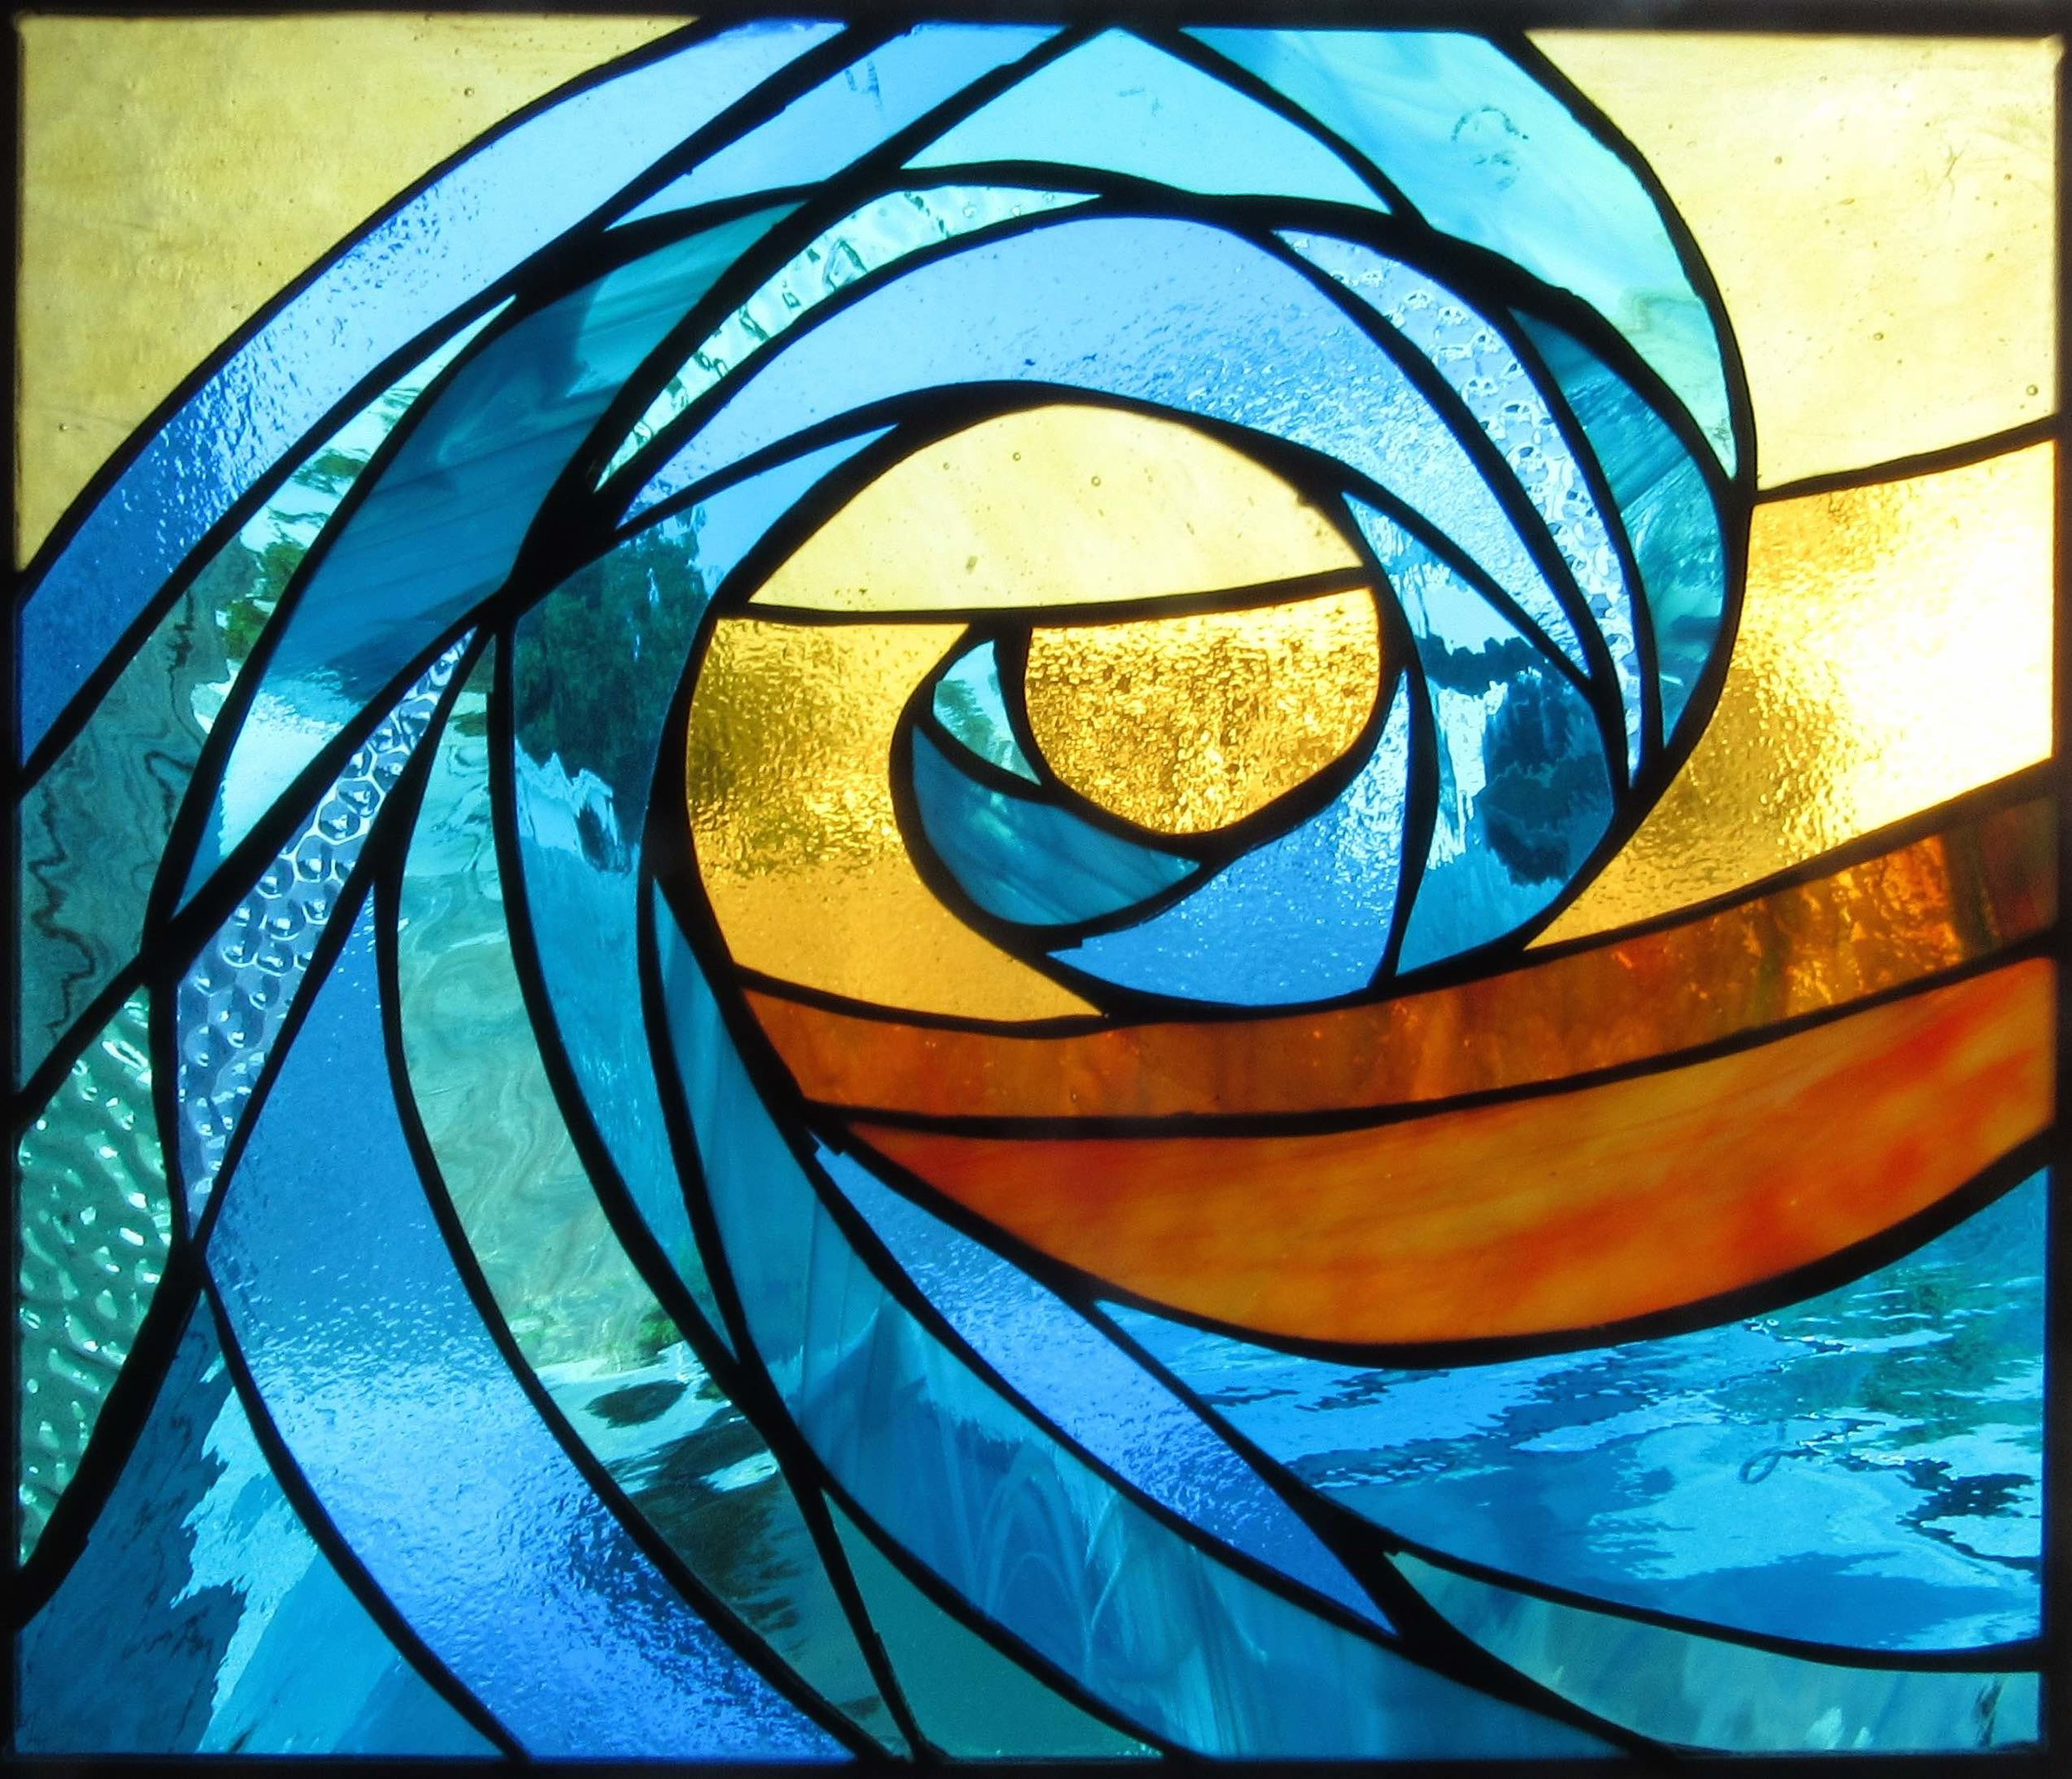 We have hundreds of stained glass waves!